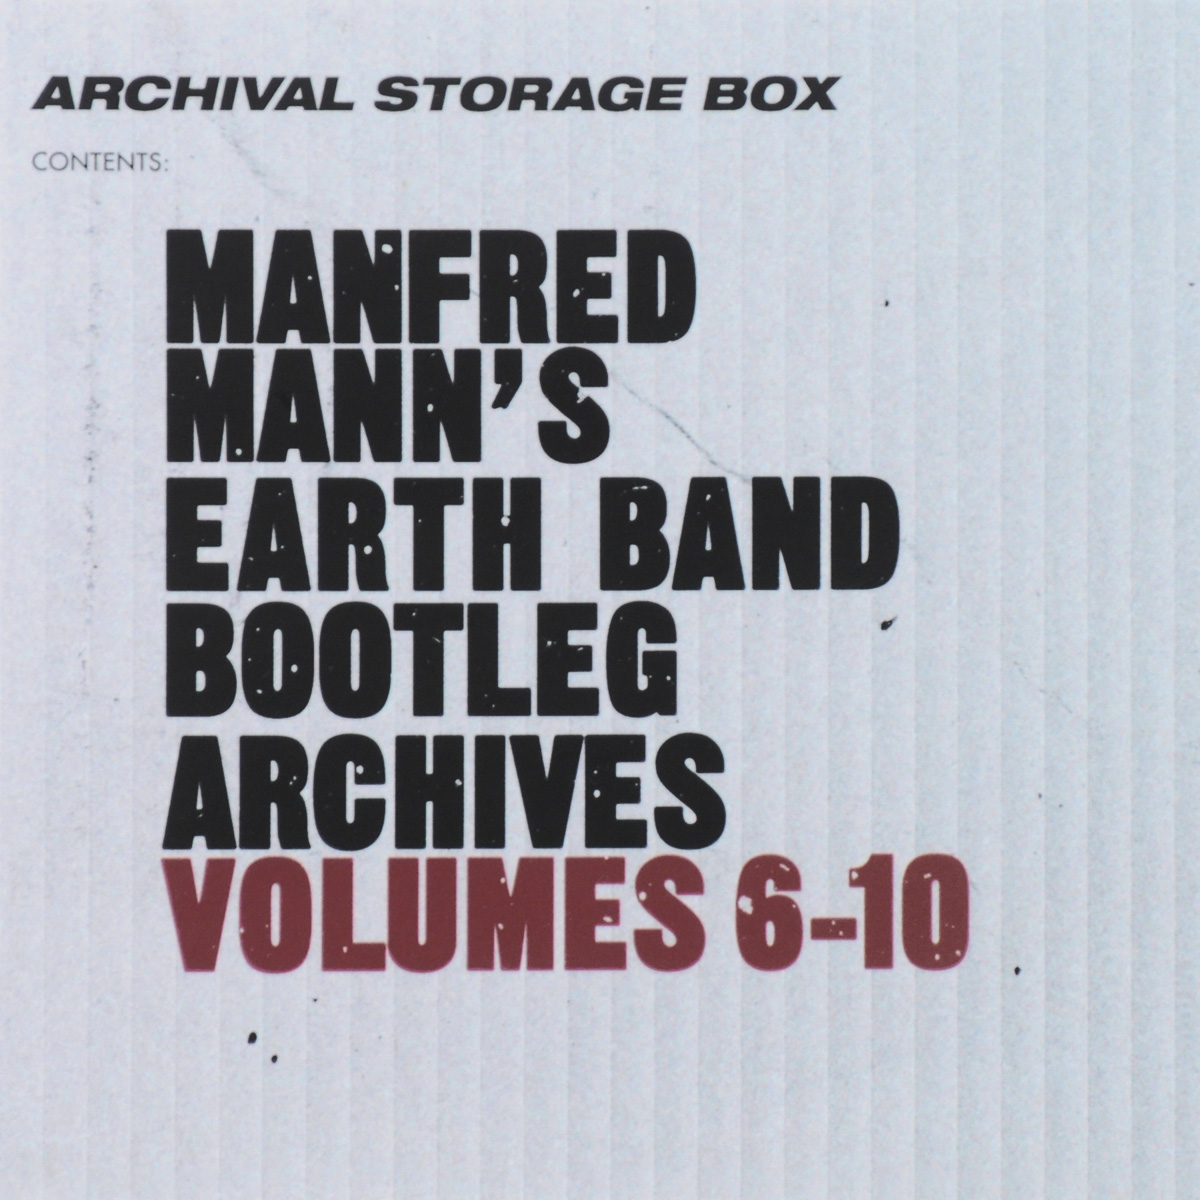 Manfred Mann's Earth Band Manfred Mann's Earth Band. Bootleg Archives. Volumes 6-10 (5 CD) manfred mann s earth band then